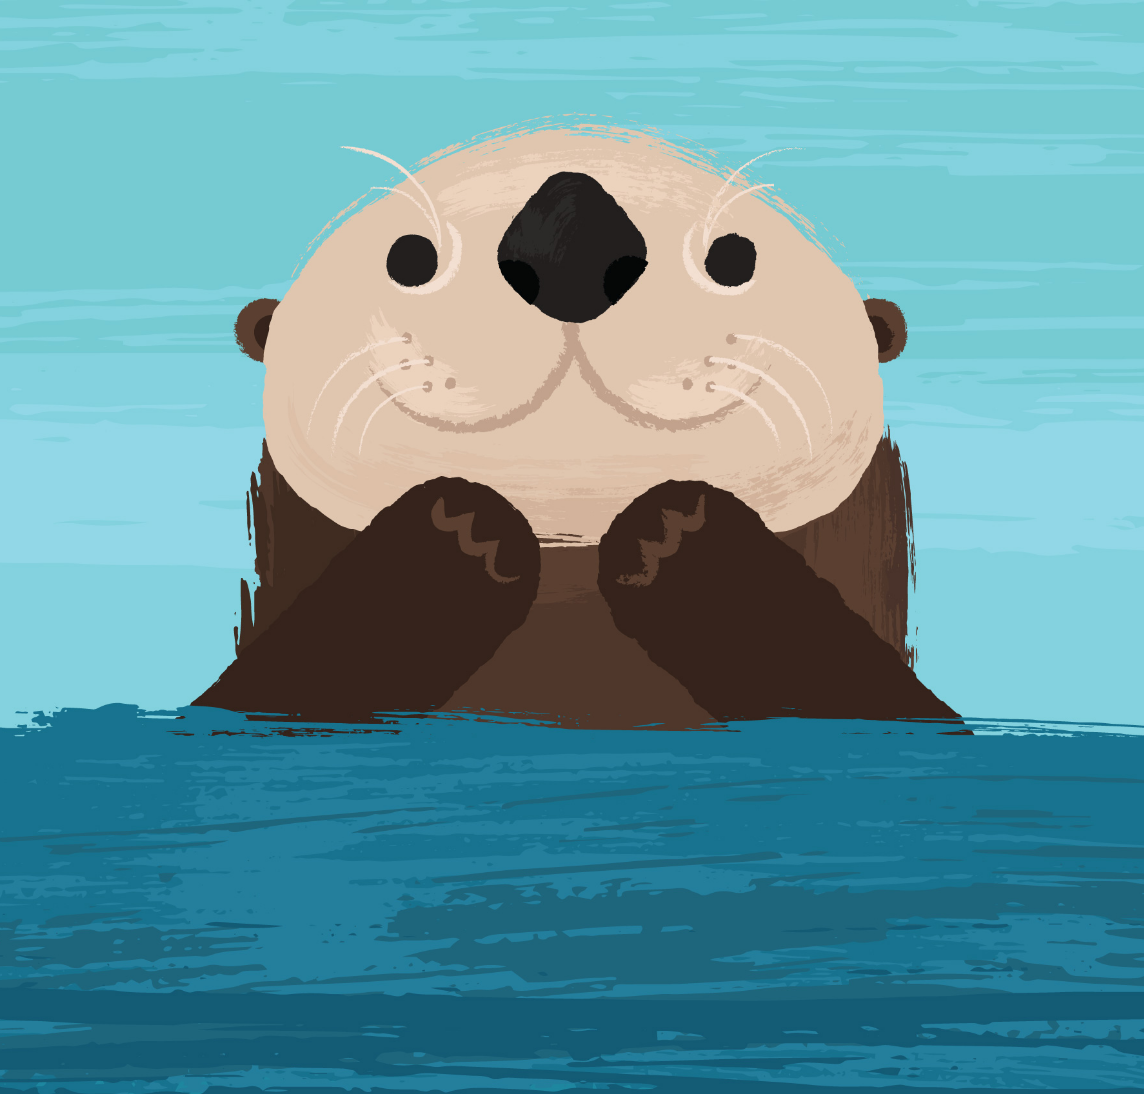 Cute illustration of sea otter face and hands